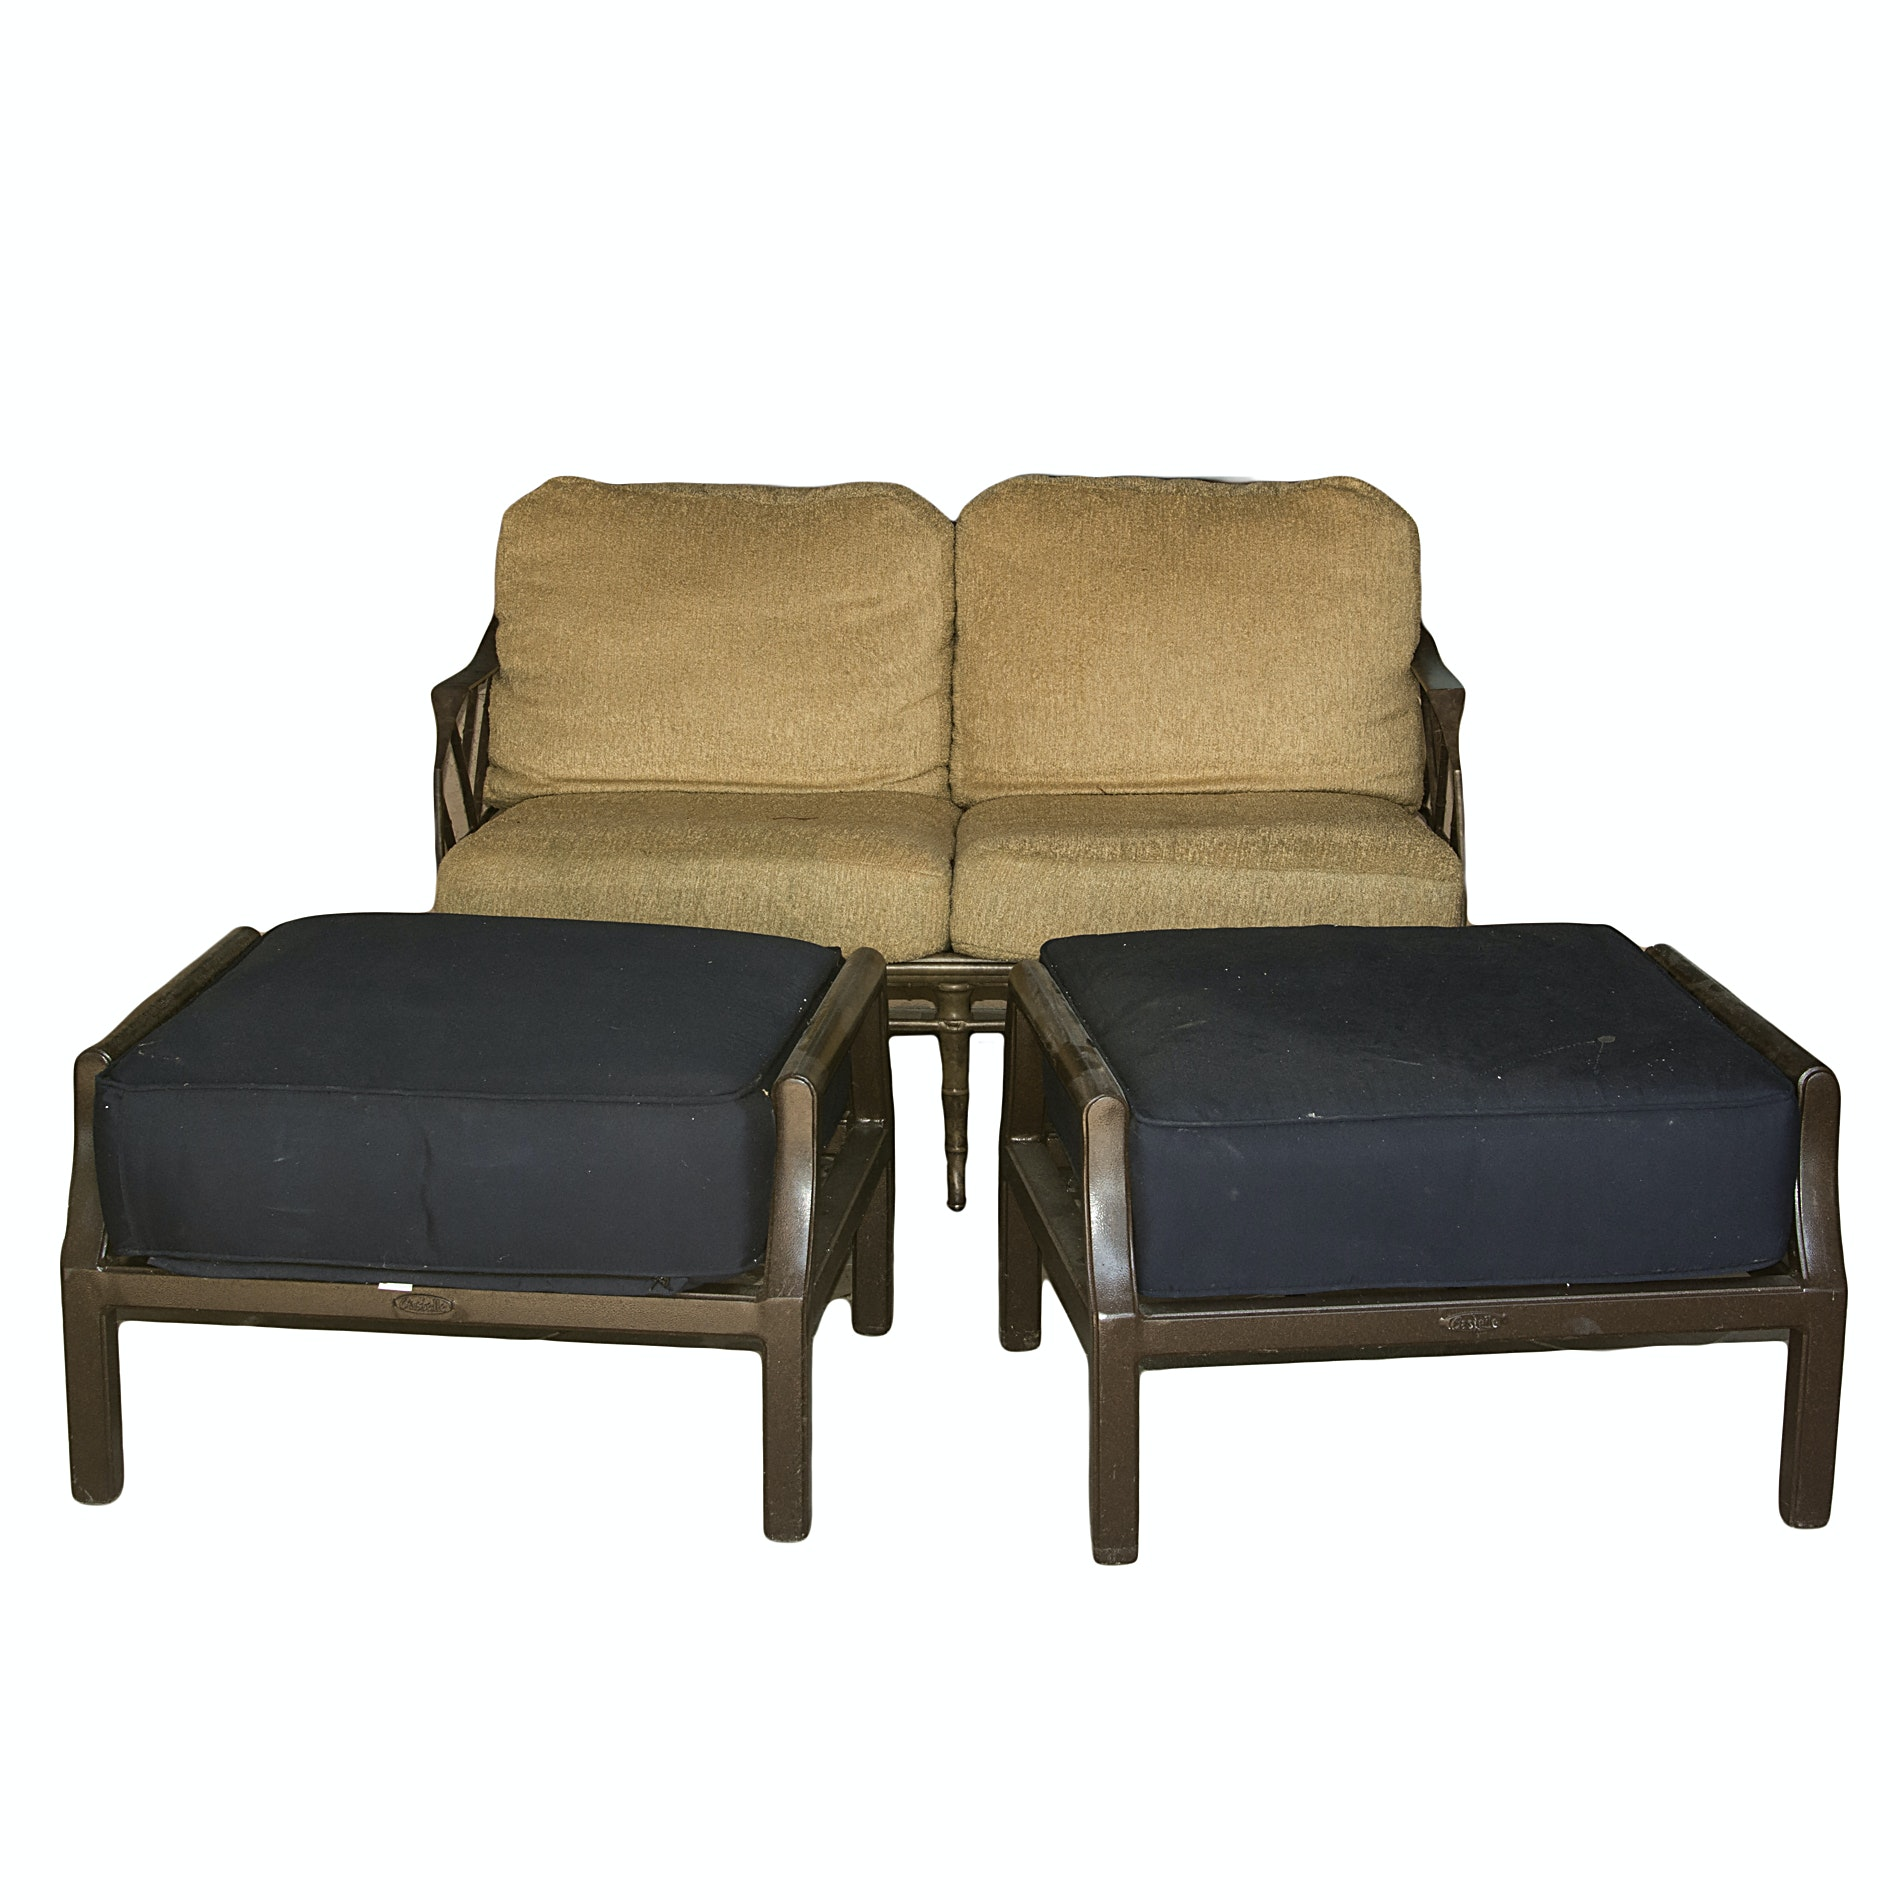 Brown Jordan Patio Loveseat and Castelle Ottomans